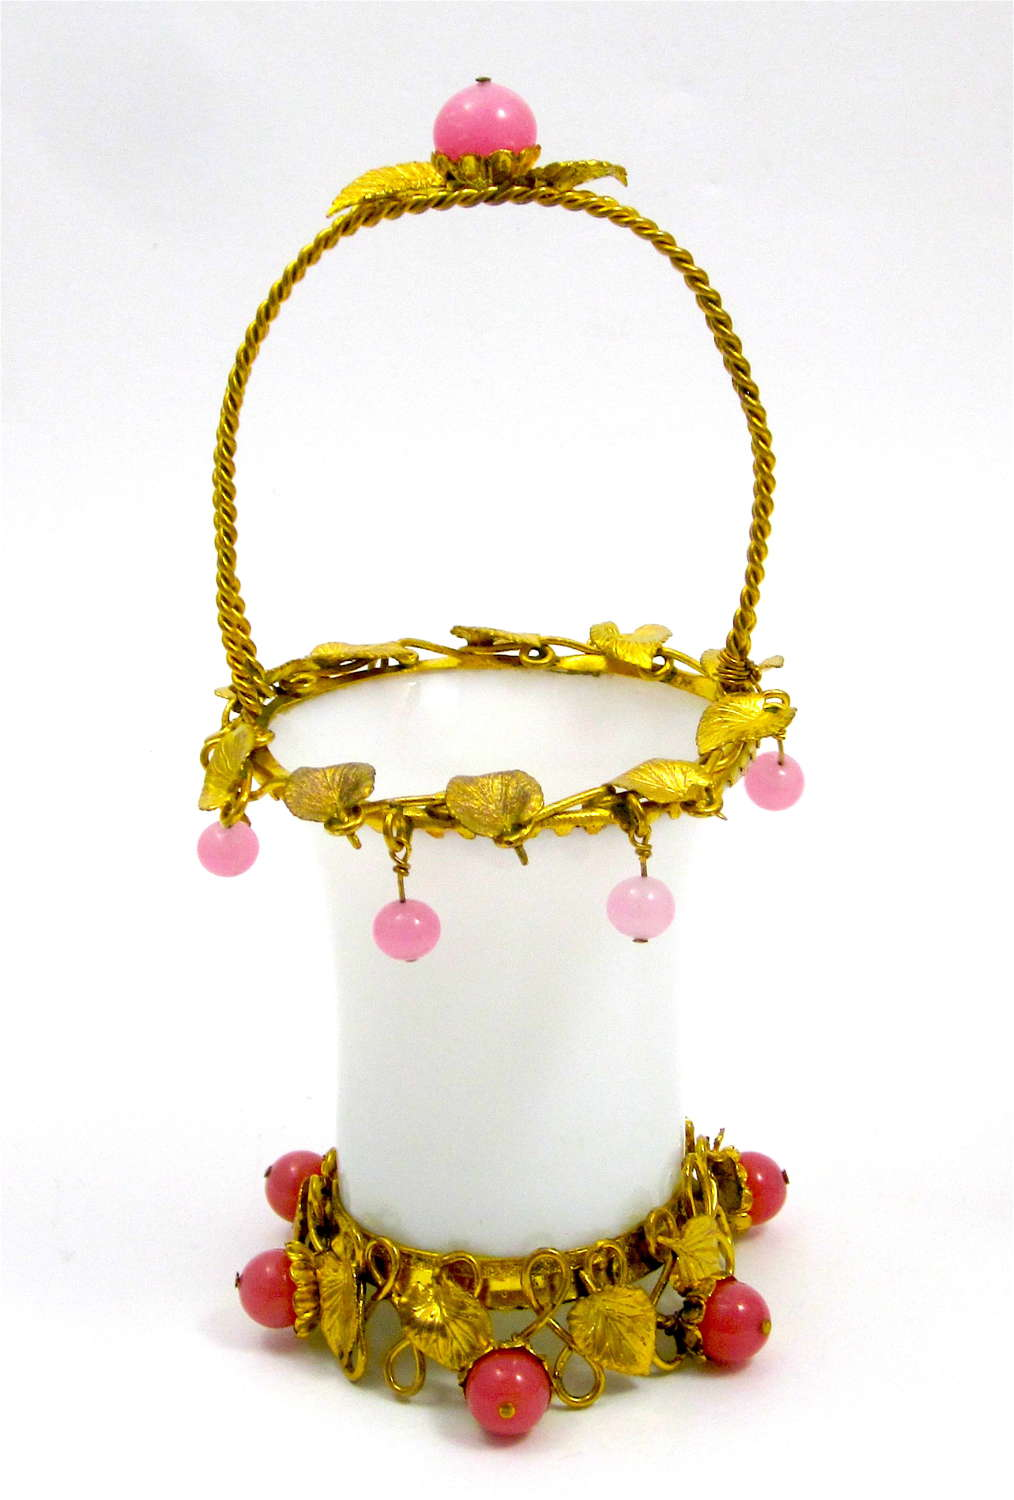 Antique Palais Royal White Opaline Glass Basket with Opaline Baubles